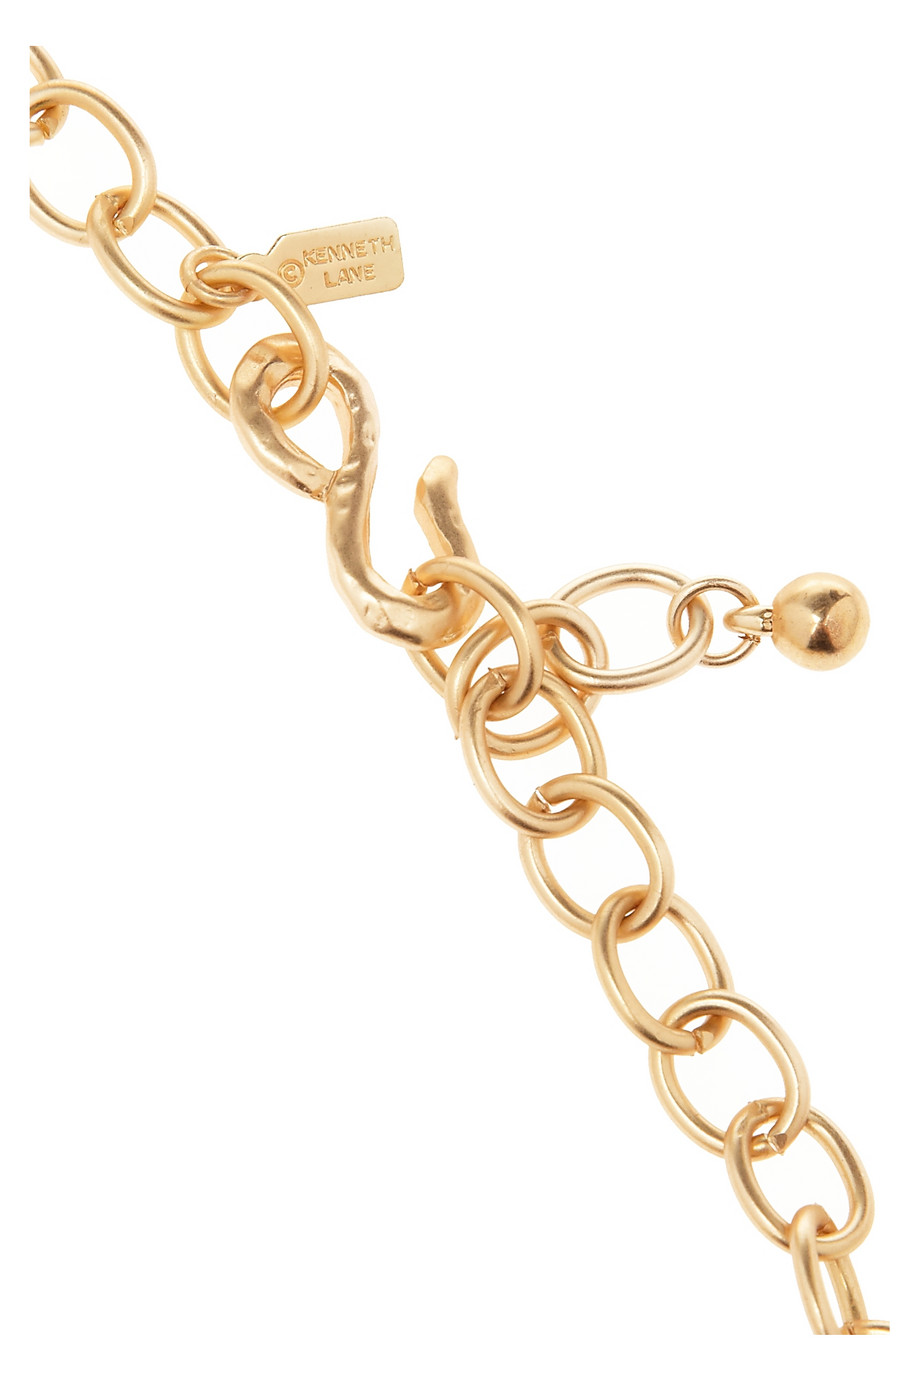 Kenneth Jay Lane Hammered Gold Plated Necklace in Metallic